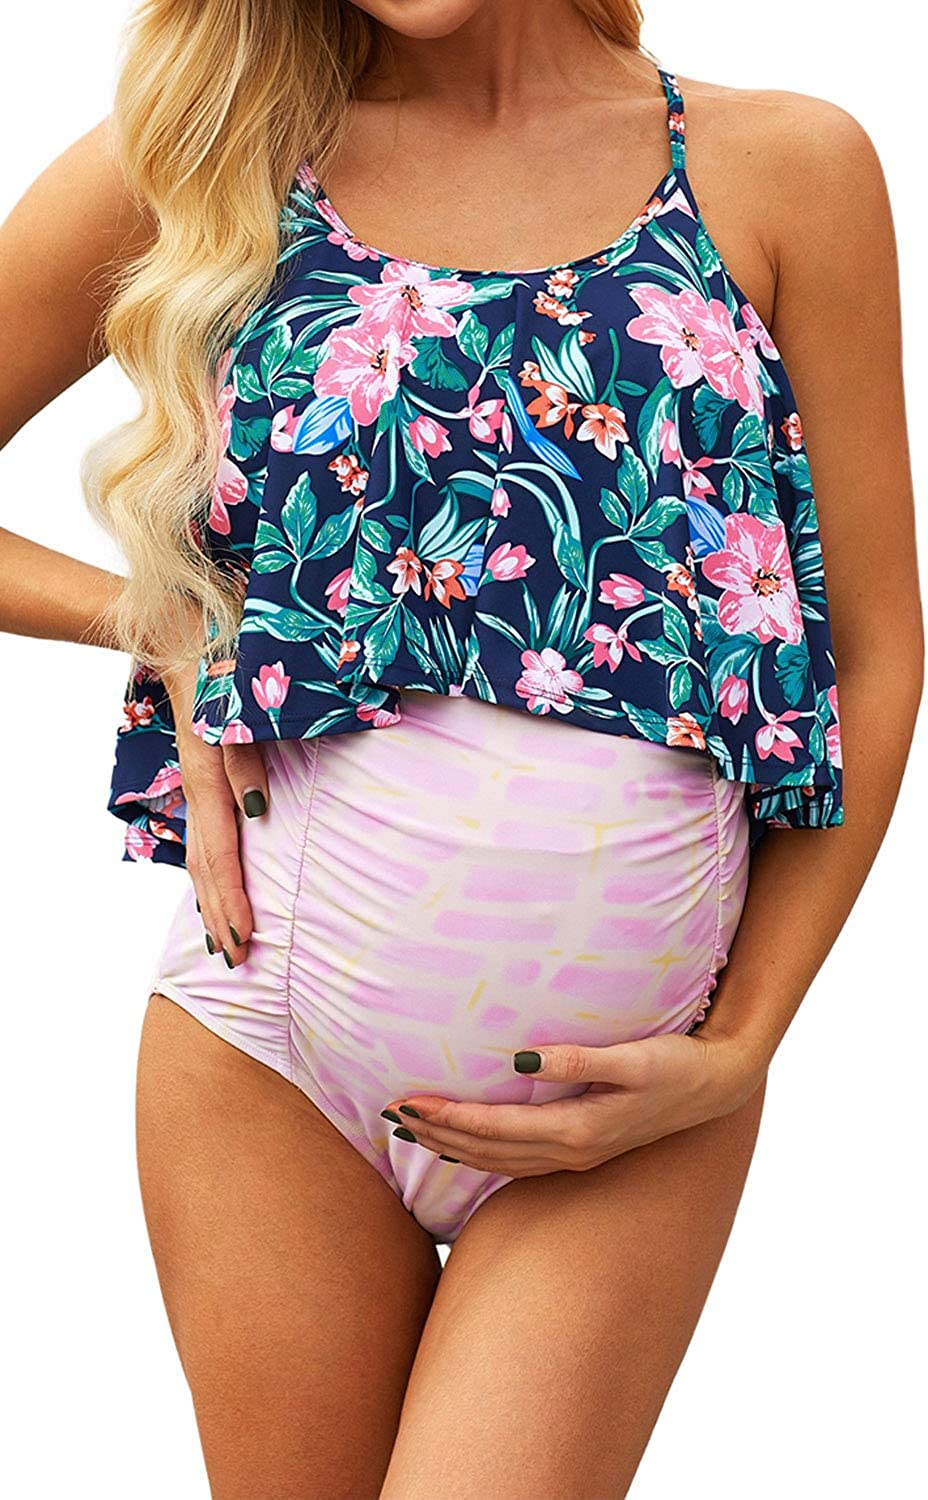 CCGKX 永遠の定番 Women's Swimsuits Floral Top Ruched 新品 送料無料 Sw Maternity One-Piece